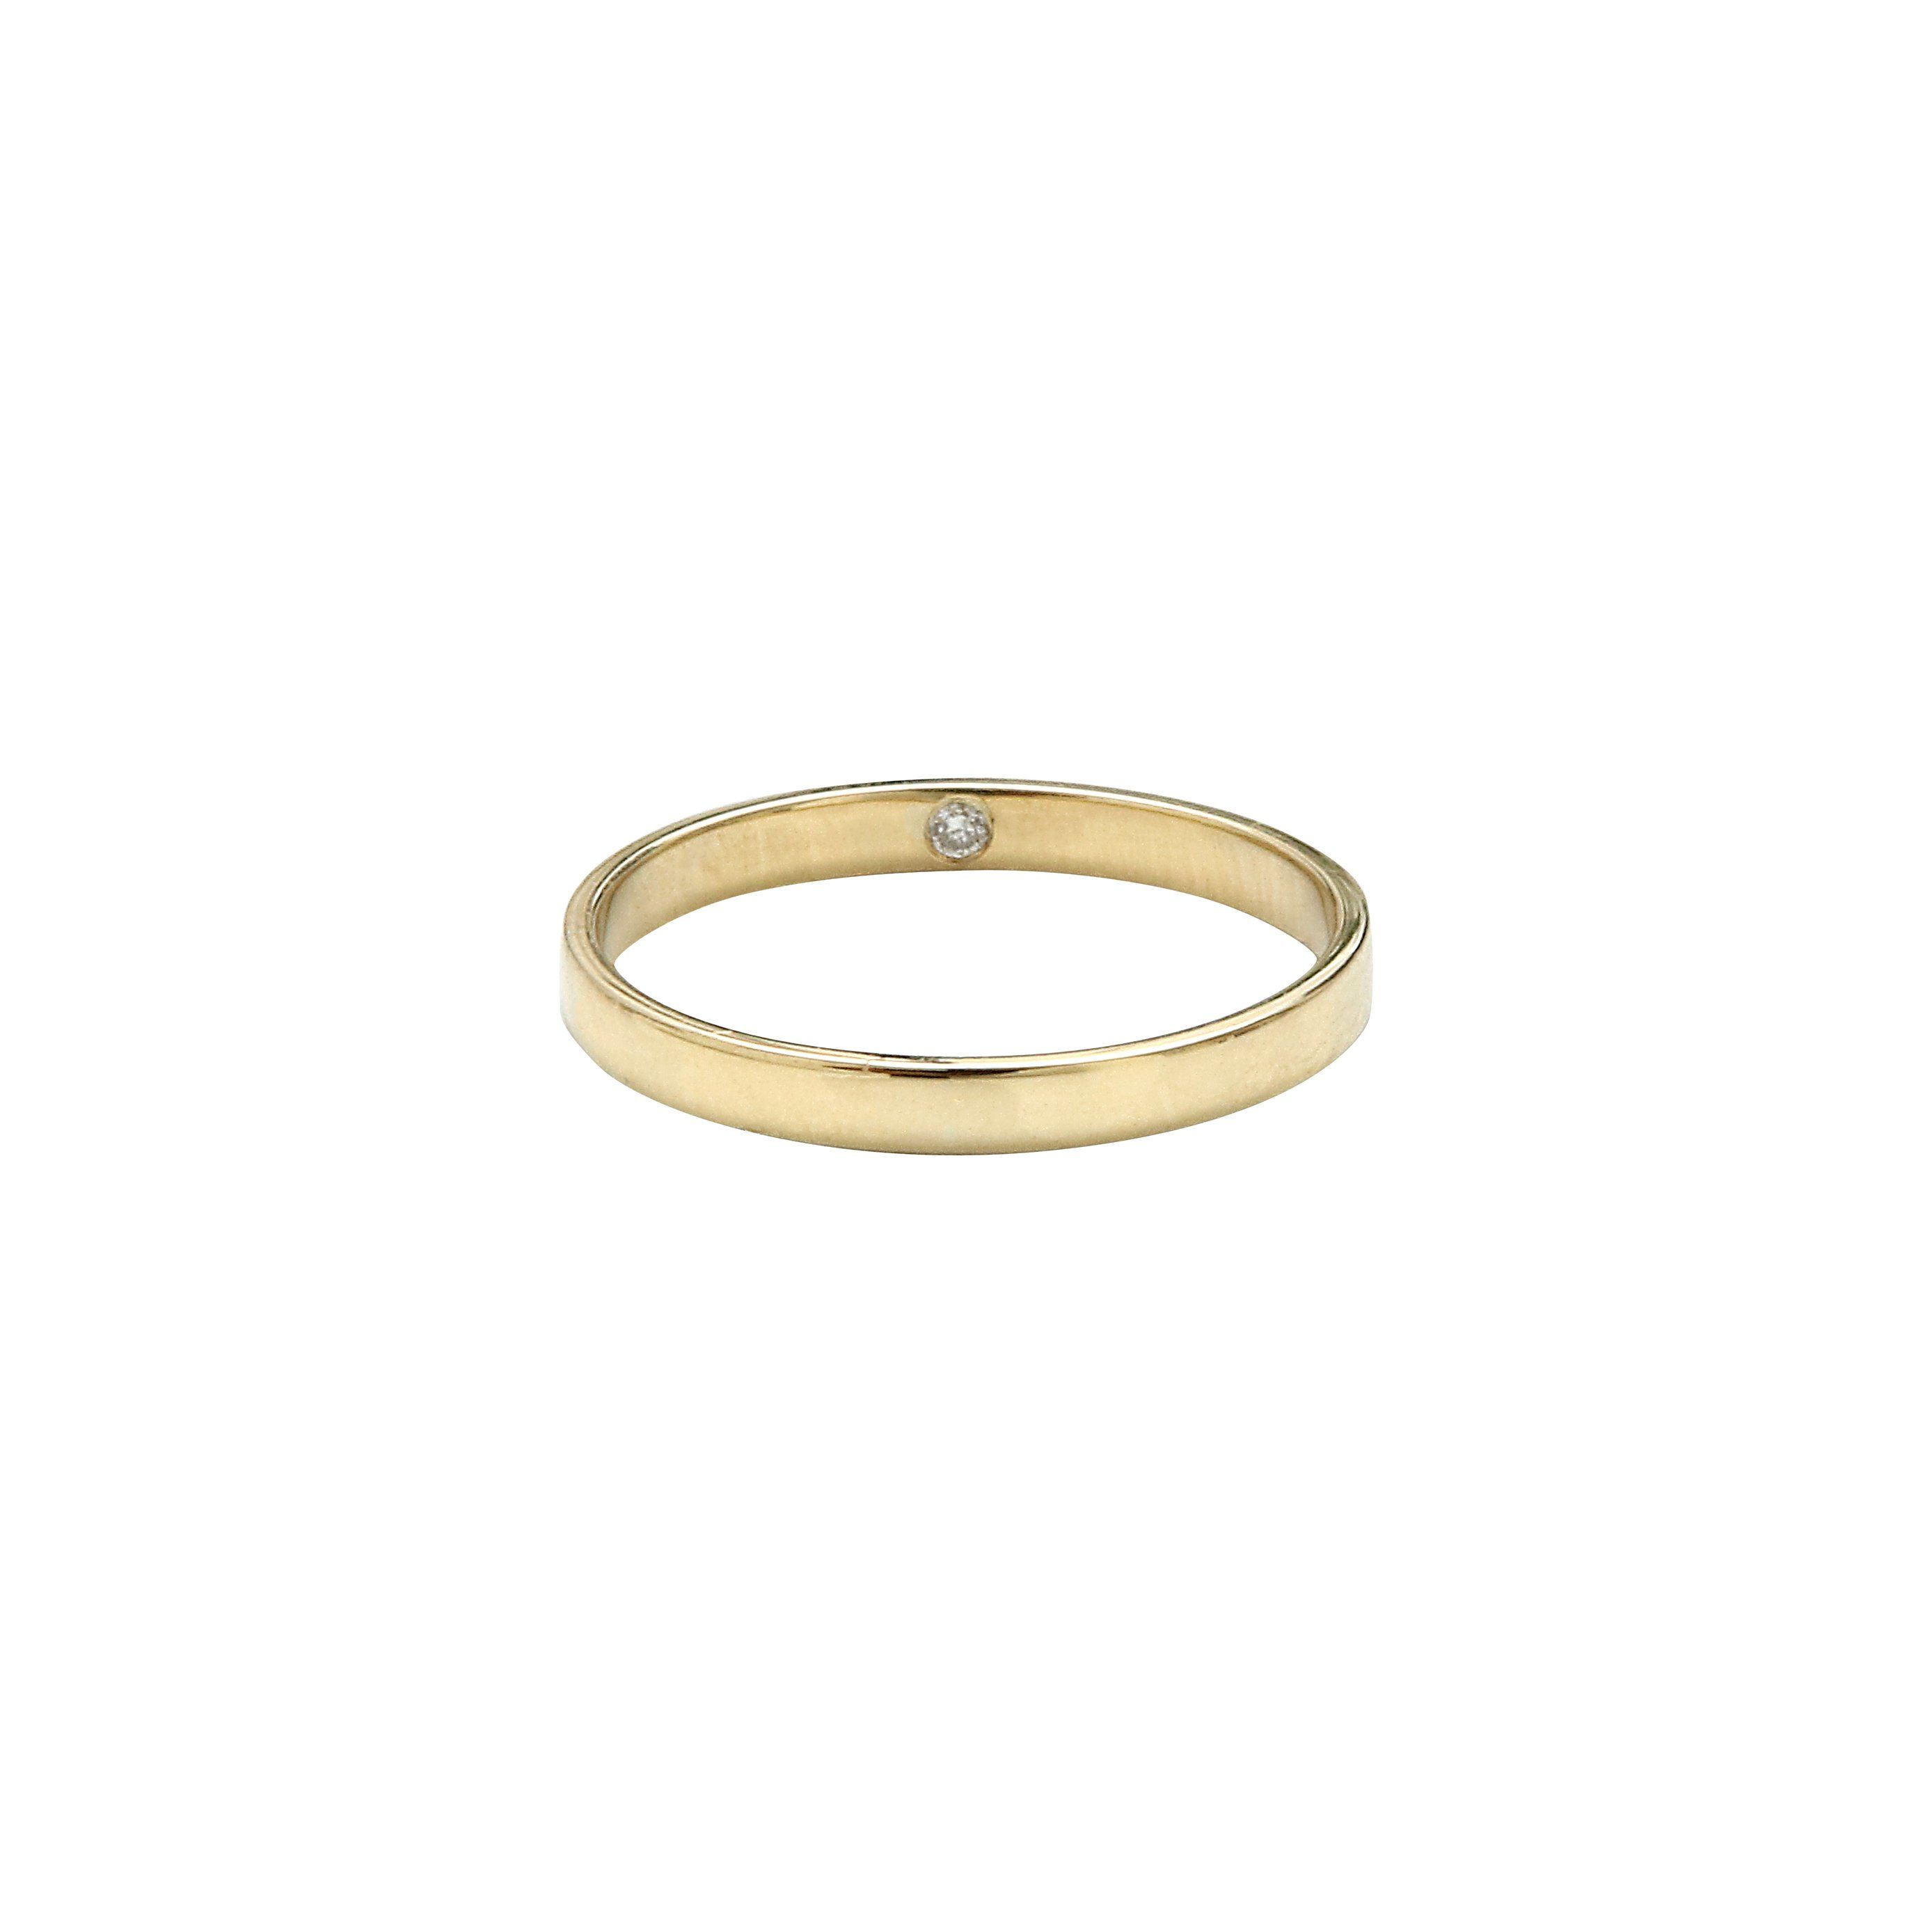 Image Result For Ring With Diamond Inside Minimalist Wedding Rings Wedding Rings Minimalist Rings